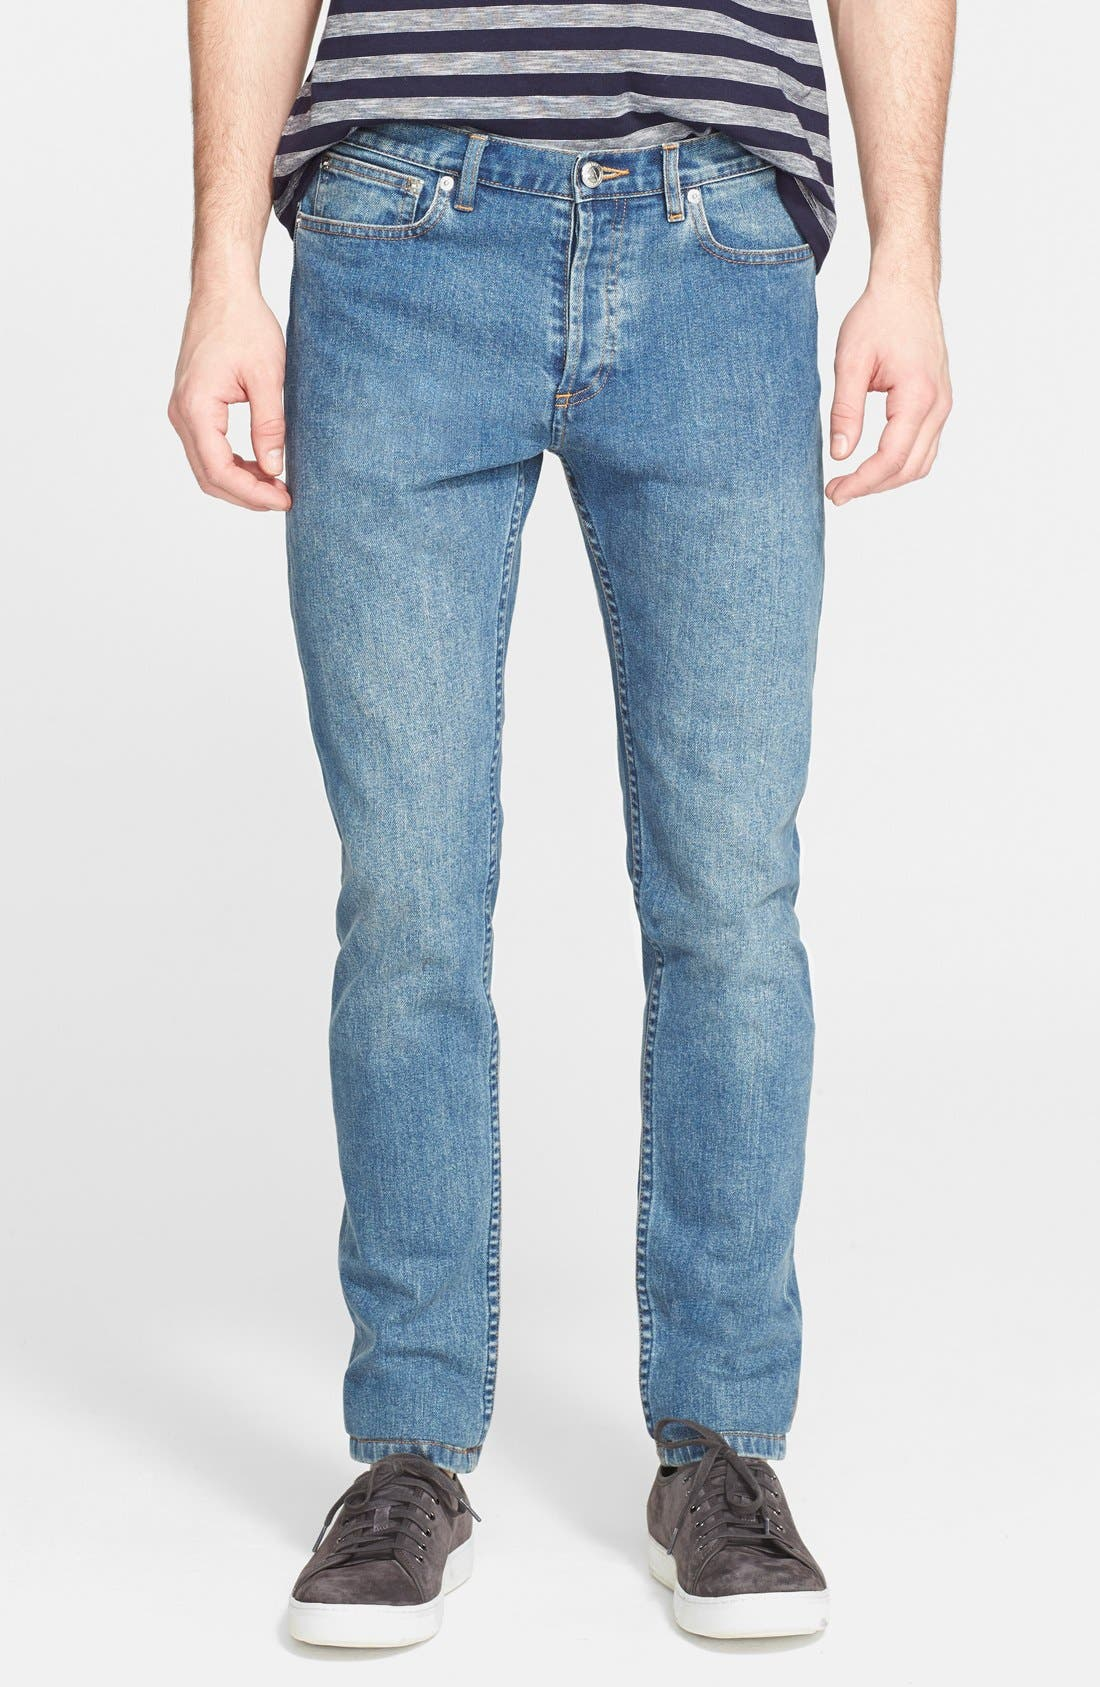 Alternate Image 1 Selected - A.P.C. 'Petit New Standard' Skinny Fit Jeans (Indigo)